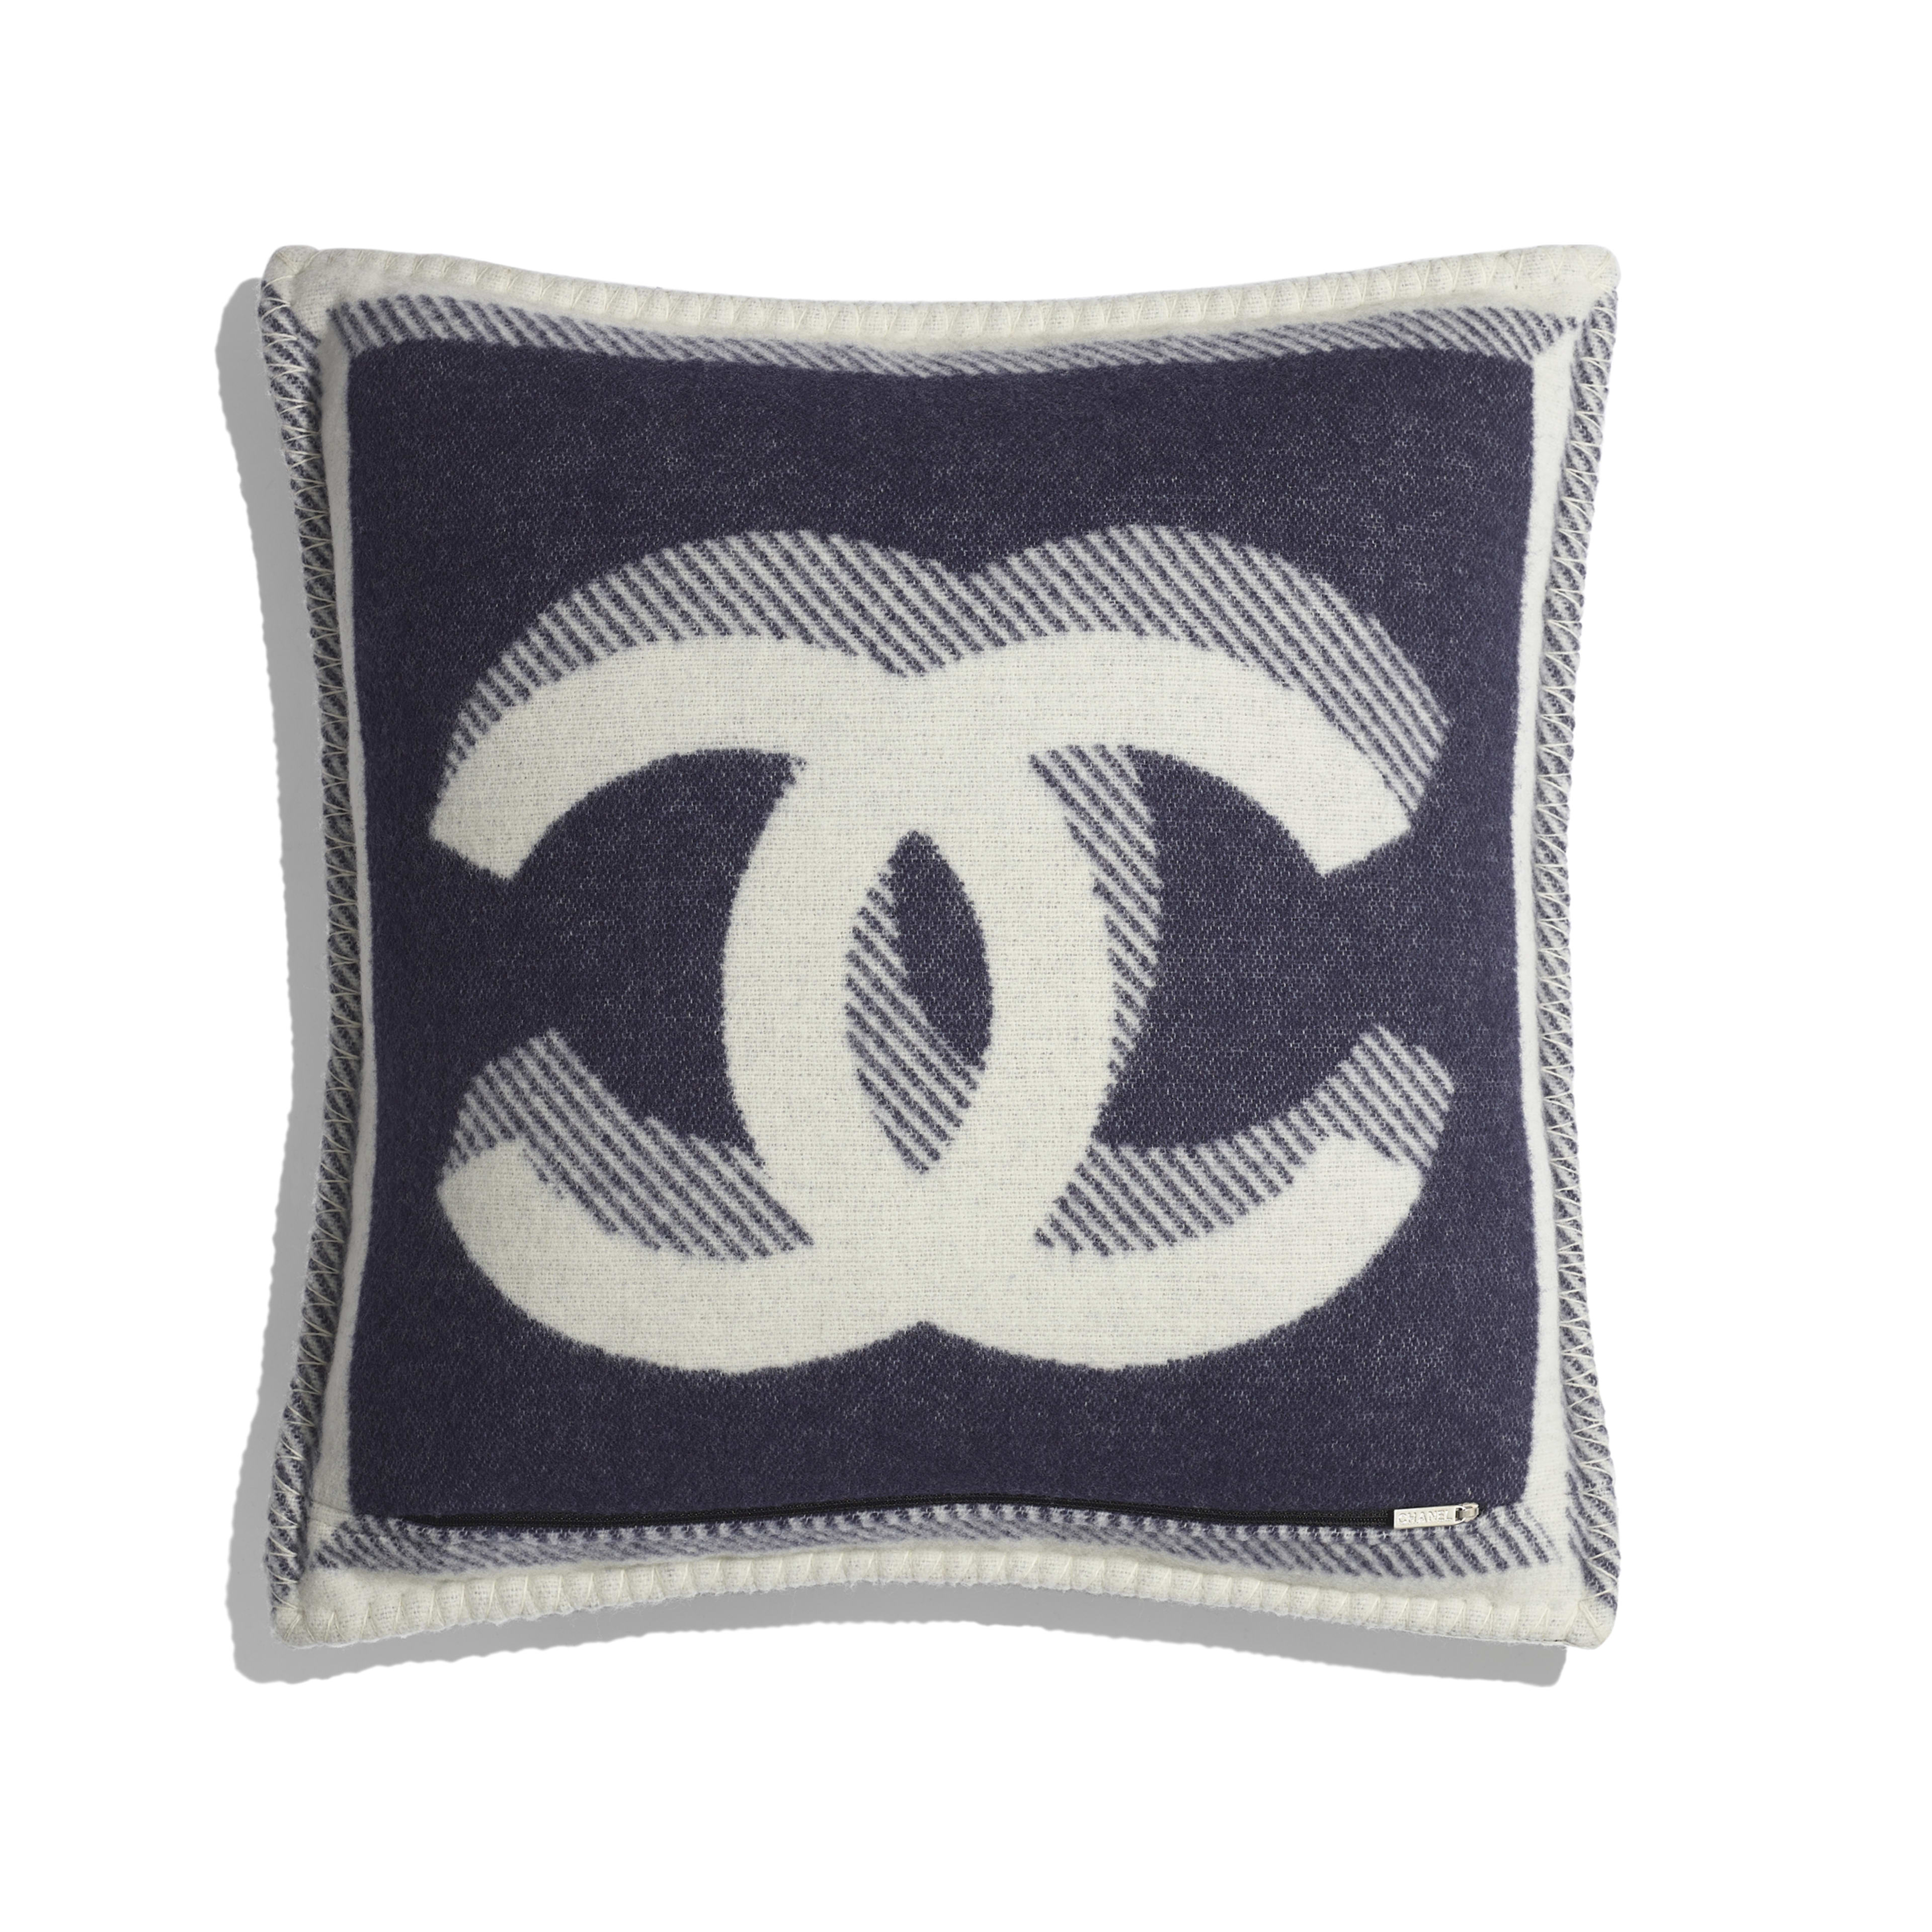 Pillow - Ivory & Navy Blue - Wool & Cashmere - Alternative view - see full sized version